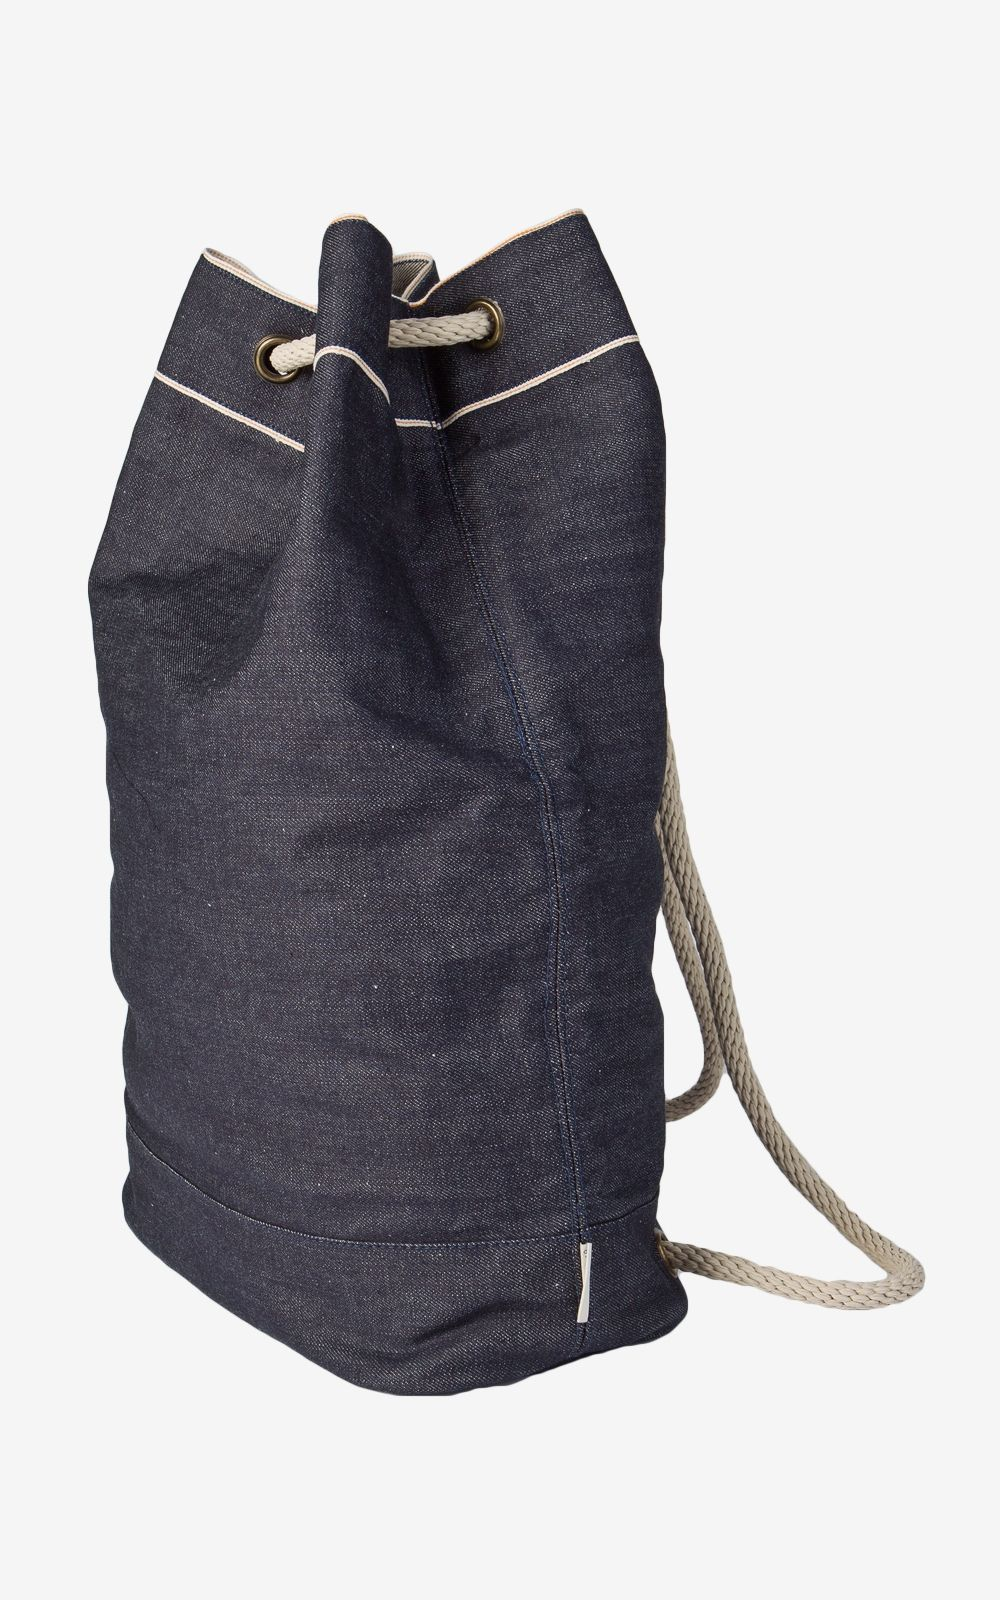 26f9ccf0e9 Nudie Jeans Abbesson Ditty Bag Selvage Denim